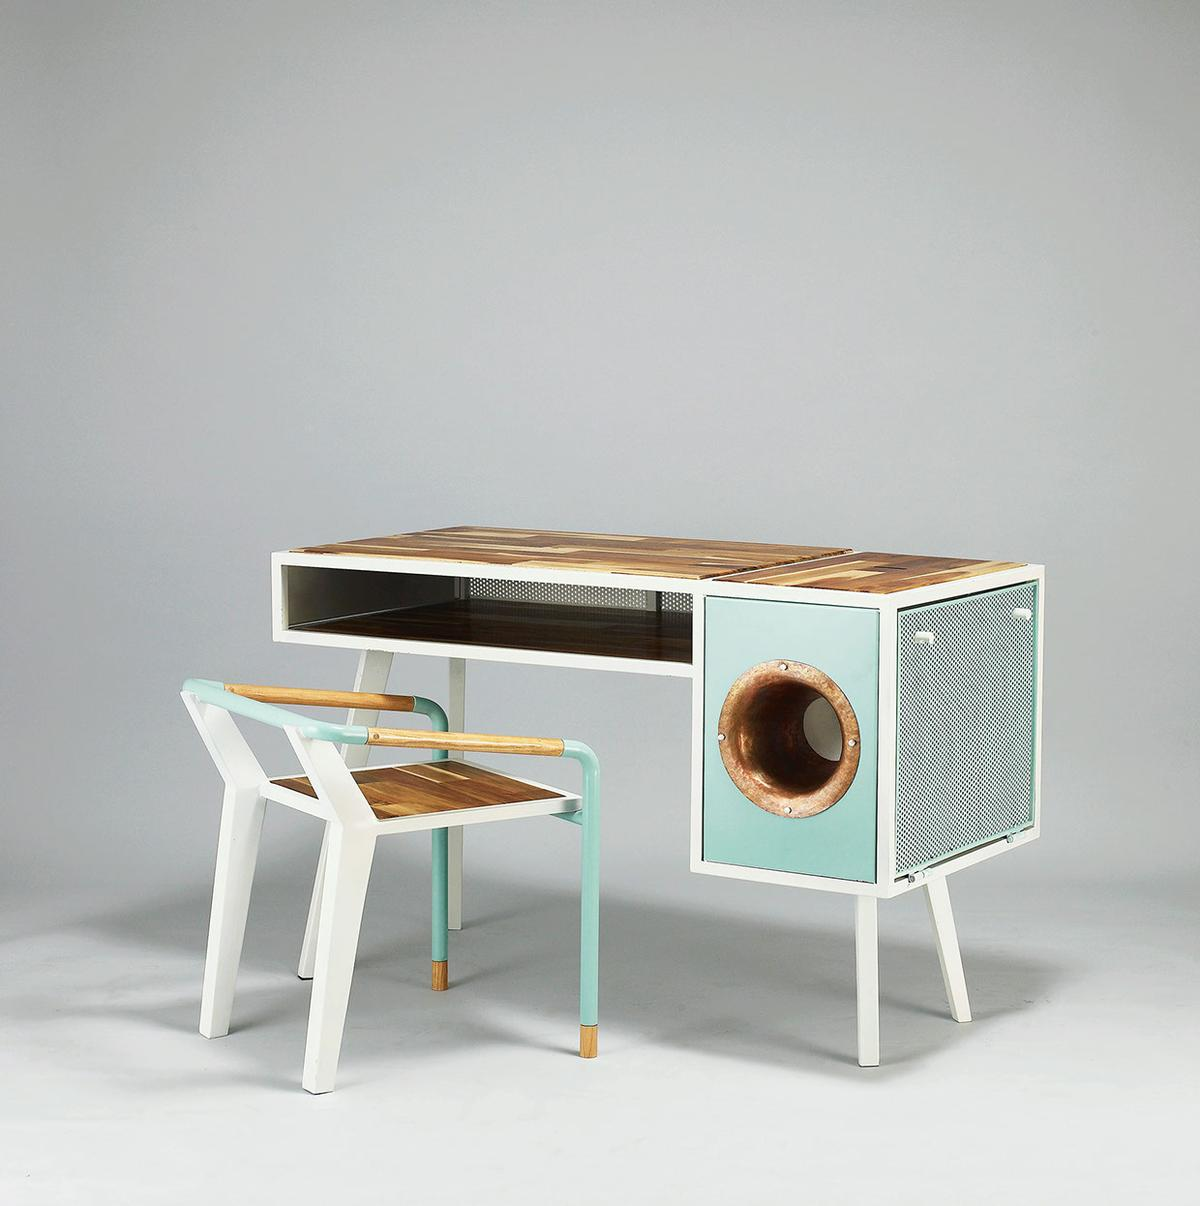 The Soundbox Desk and accompanying chair is crafted from acacia wood, copper and steel